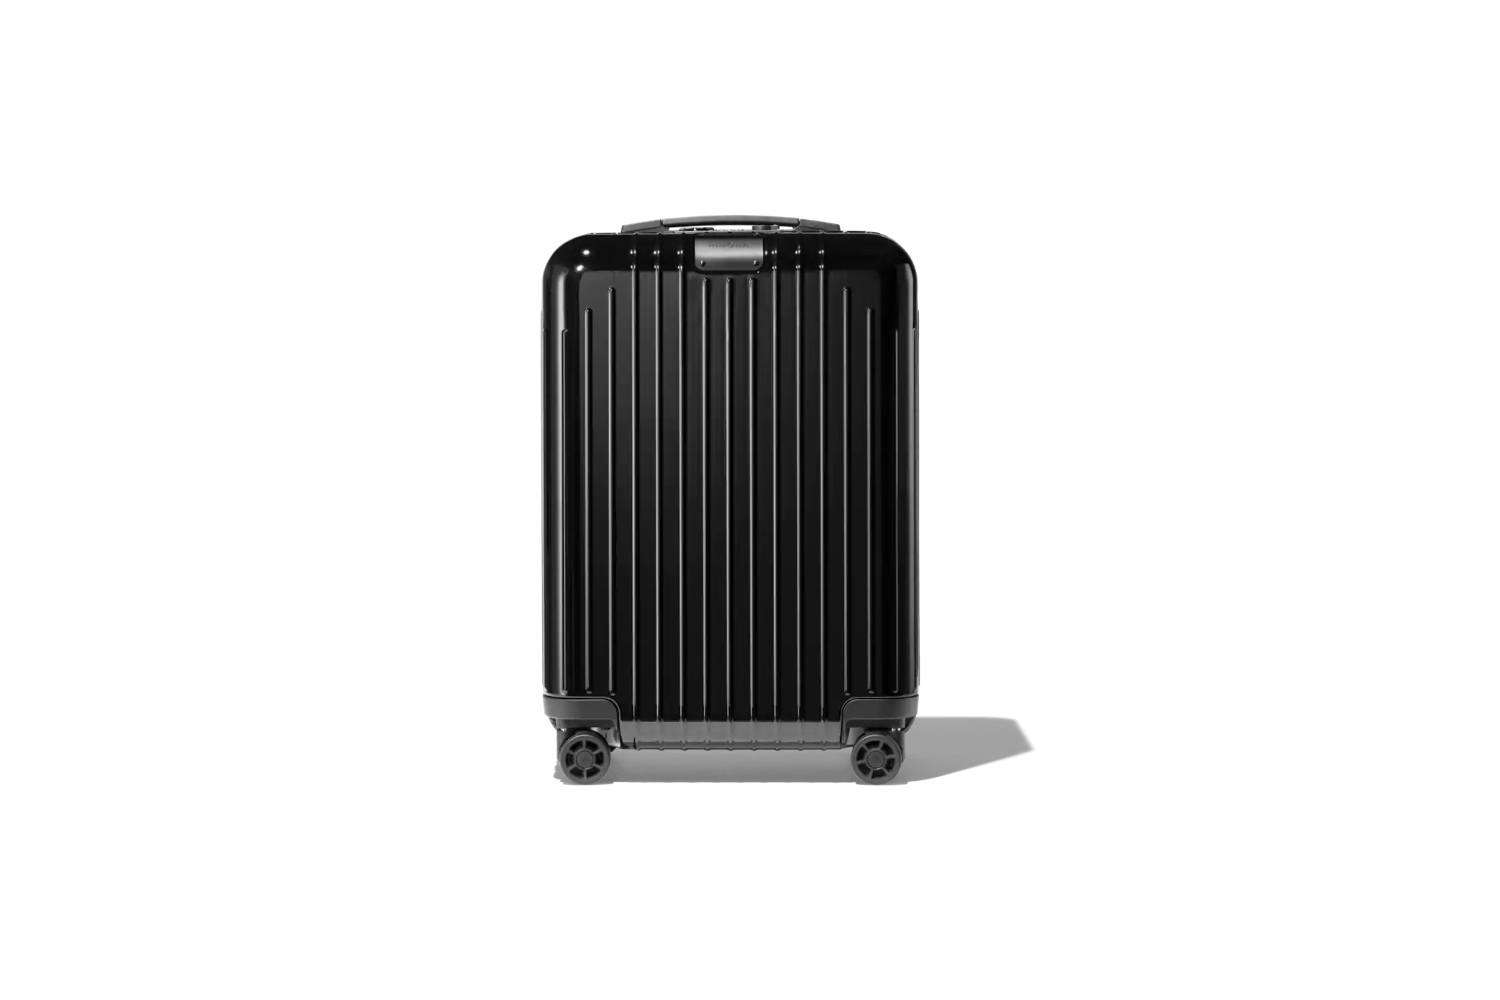 Julie rounded up our staff's favorite wheeled suitcases. Different styles, different price points: The Rimowa, shown here, is the Rolls Royce of the bunch, coming in at $575, but there's also a suitcase on the list that costs just $50. SeeEditors' Picks: Our 10 Favorite Wheeled Carry-On Luggage Picks.